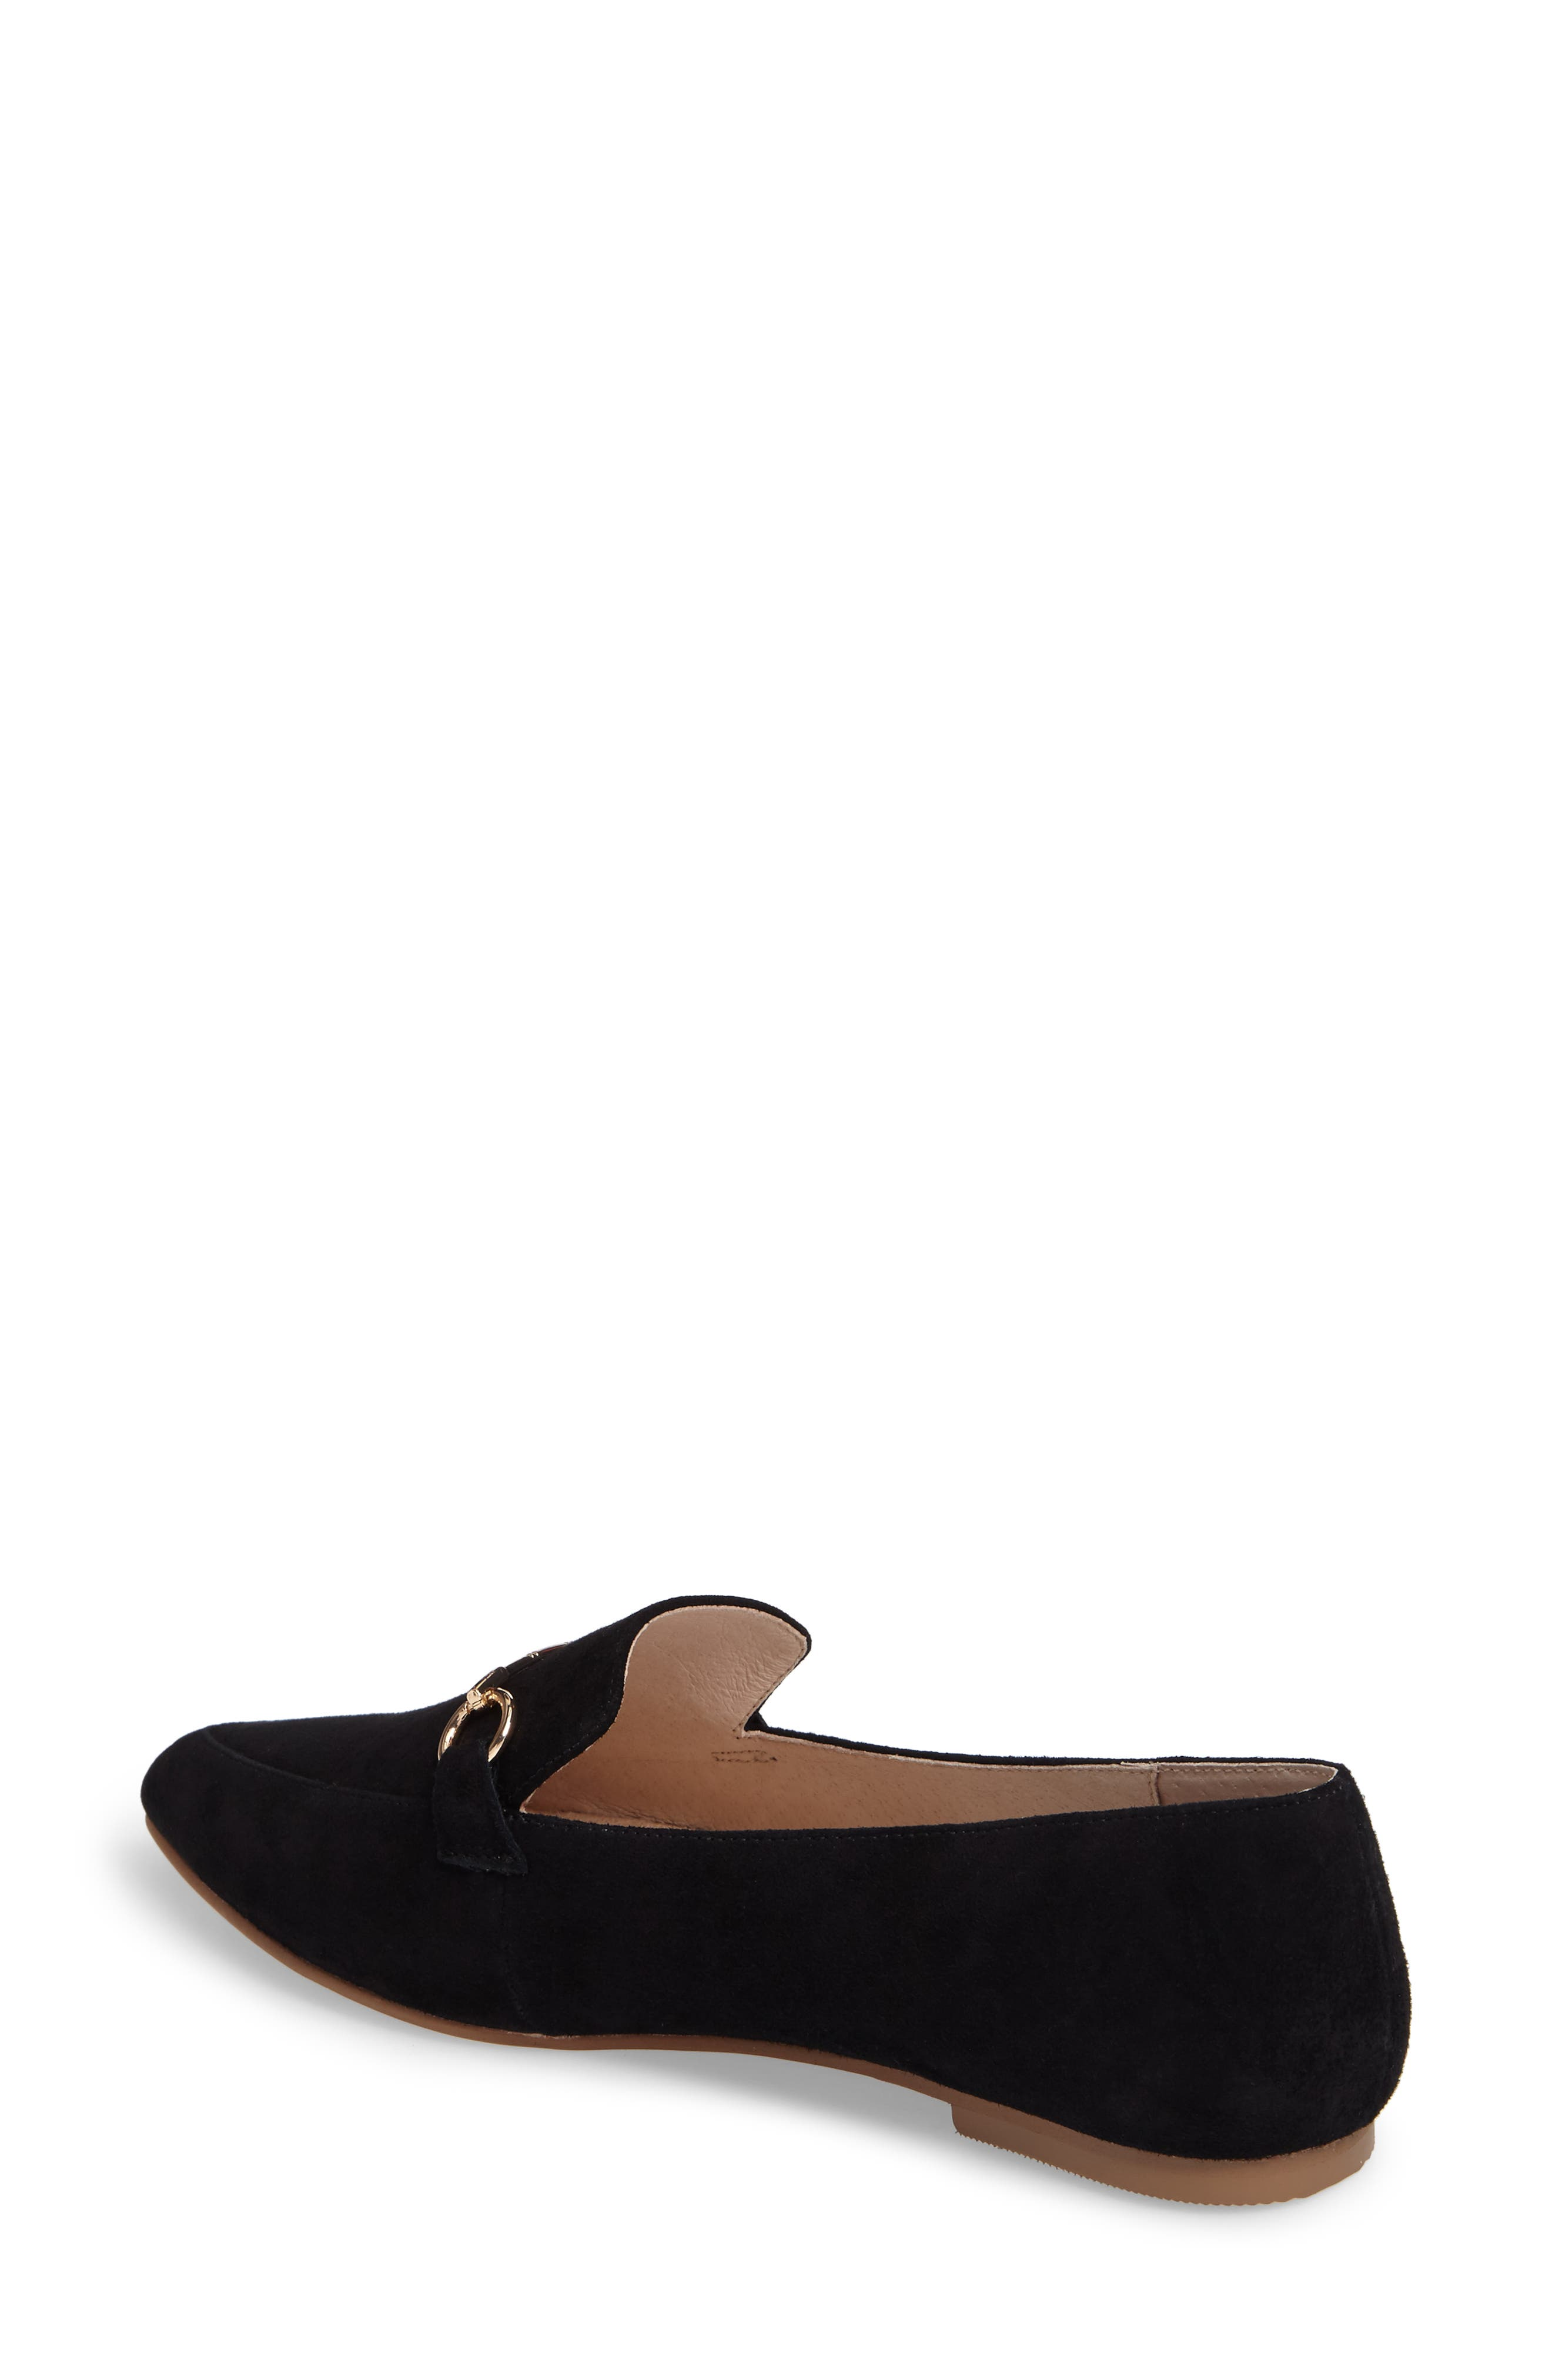 Cambrie Loafer Flat,                             Alternate thumbnail 2, color,                             001